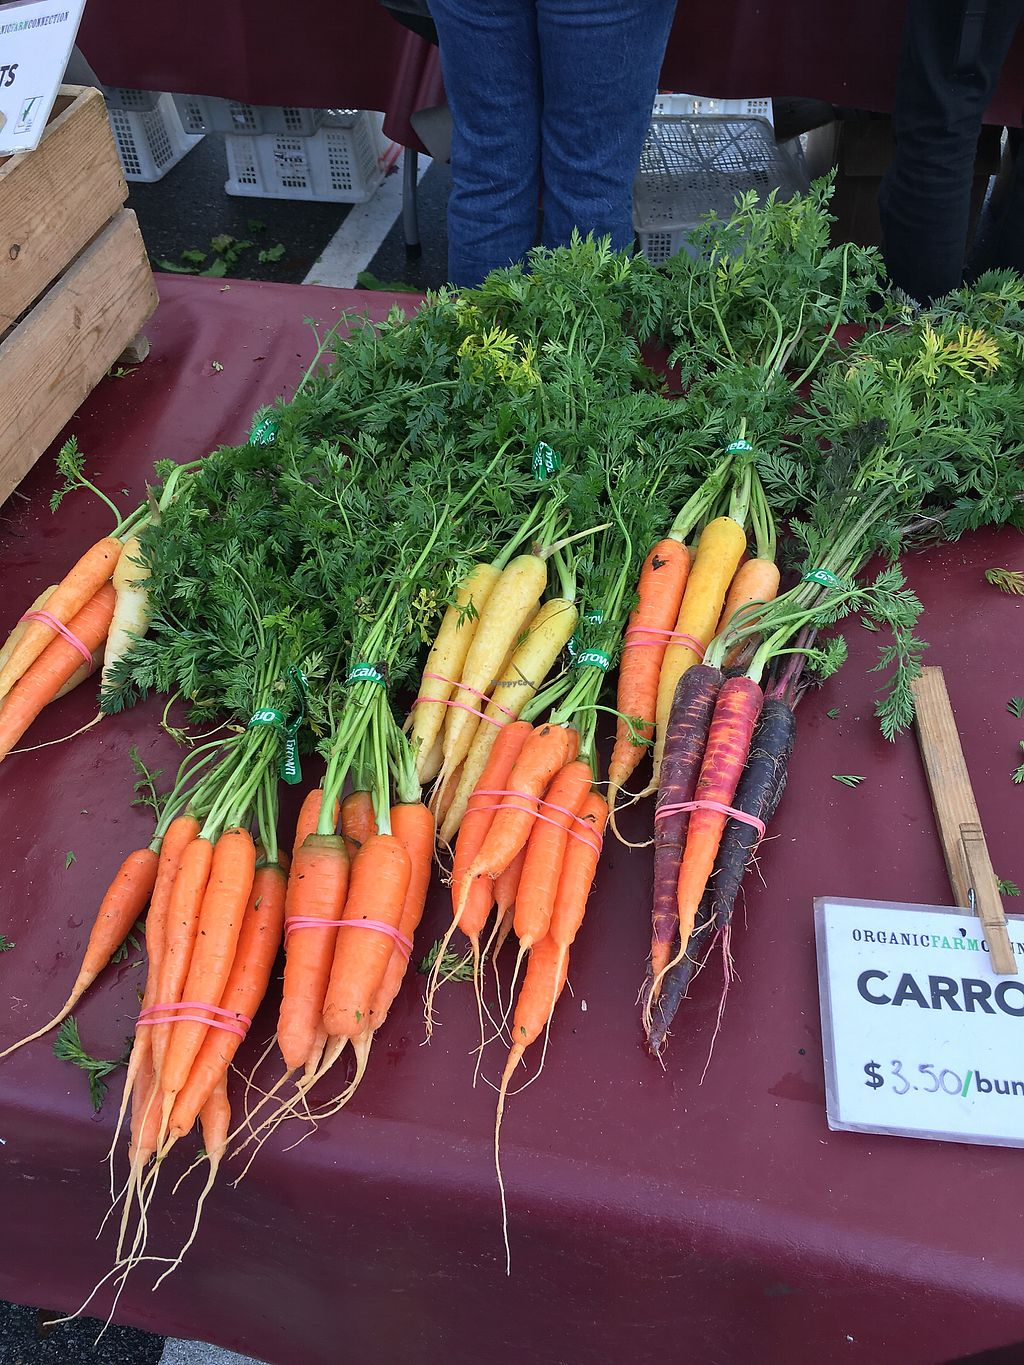 """Photo of Farmers Markets  by <a href=""""/members/profile/Siup"""">Siup</a> <br/>Carrots  <br/> December 11, 2017  - <a href='/contact/abuse/image/14275/334504'>Report</a>"""